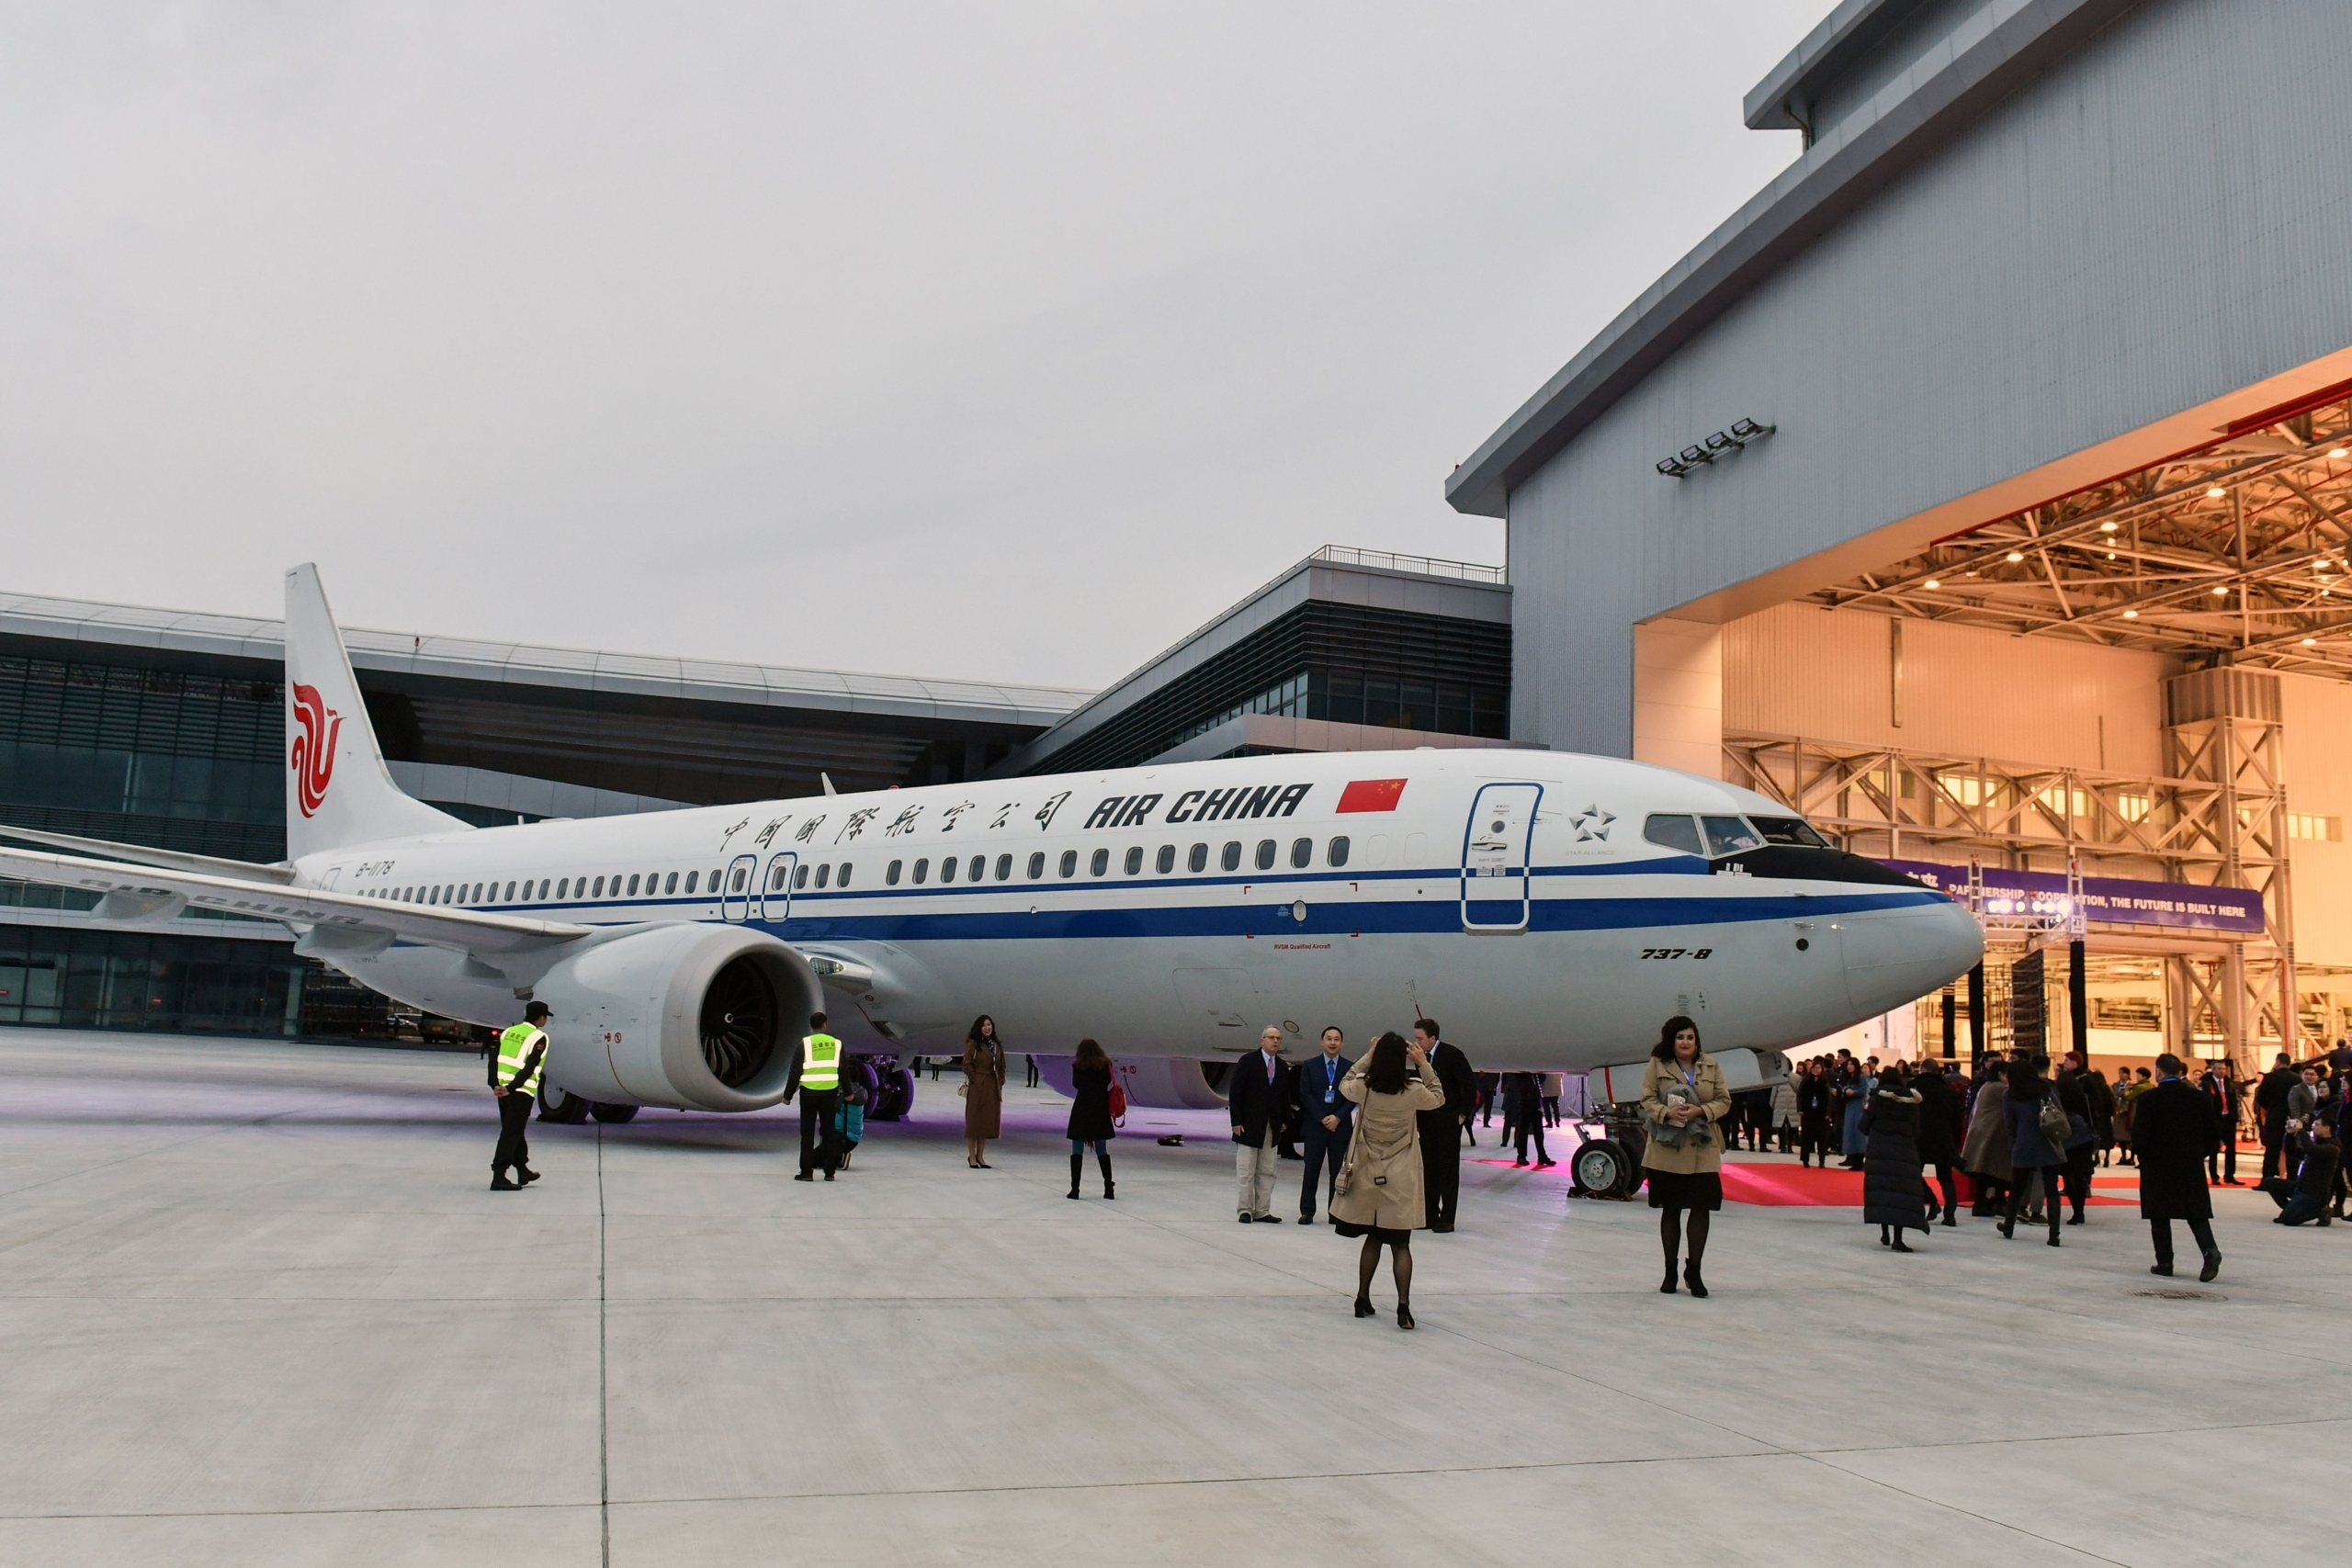 Which Airlines In China Have The Boeing 737 MAX In Their Fleet?